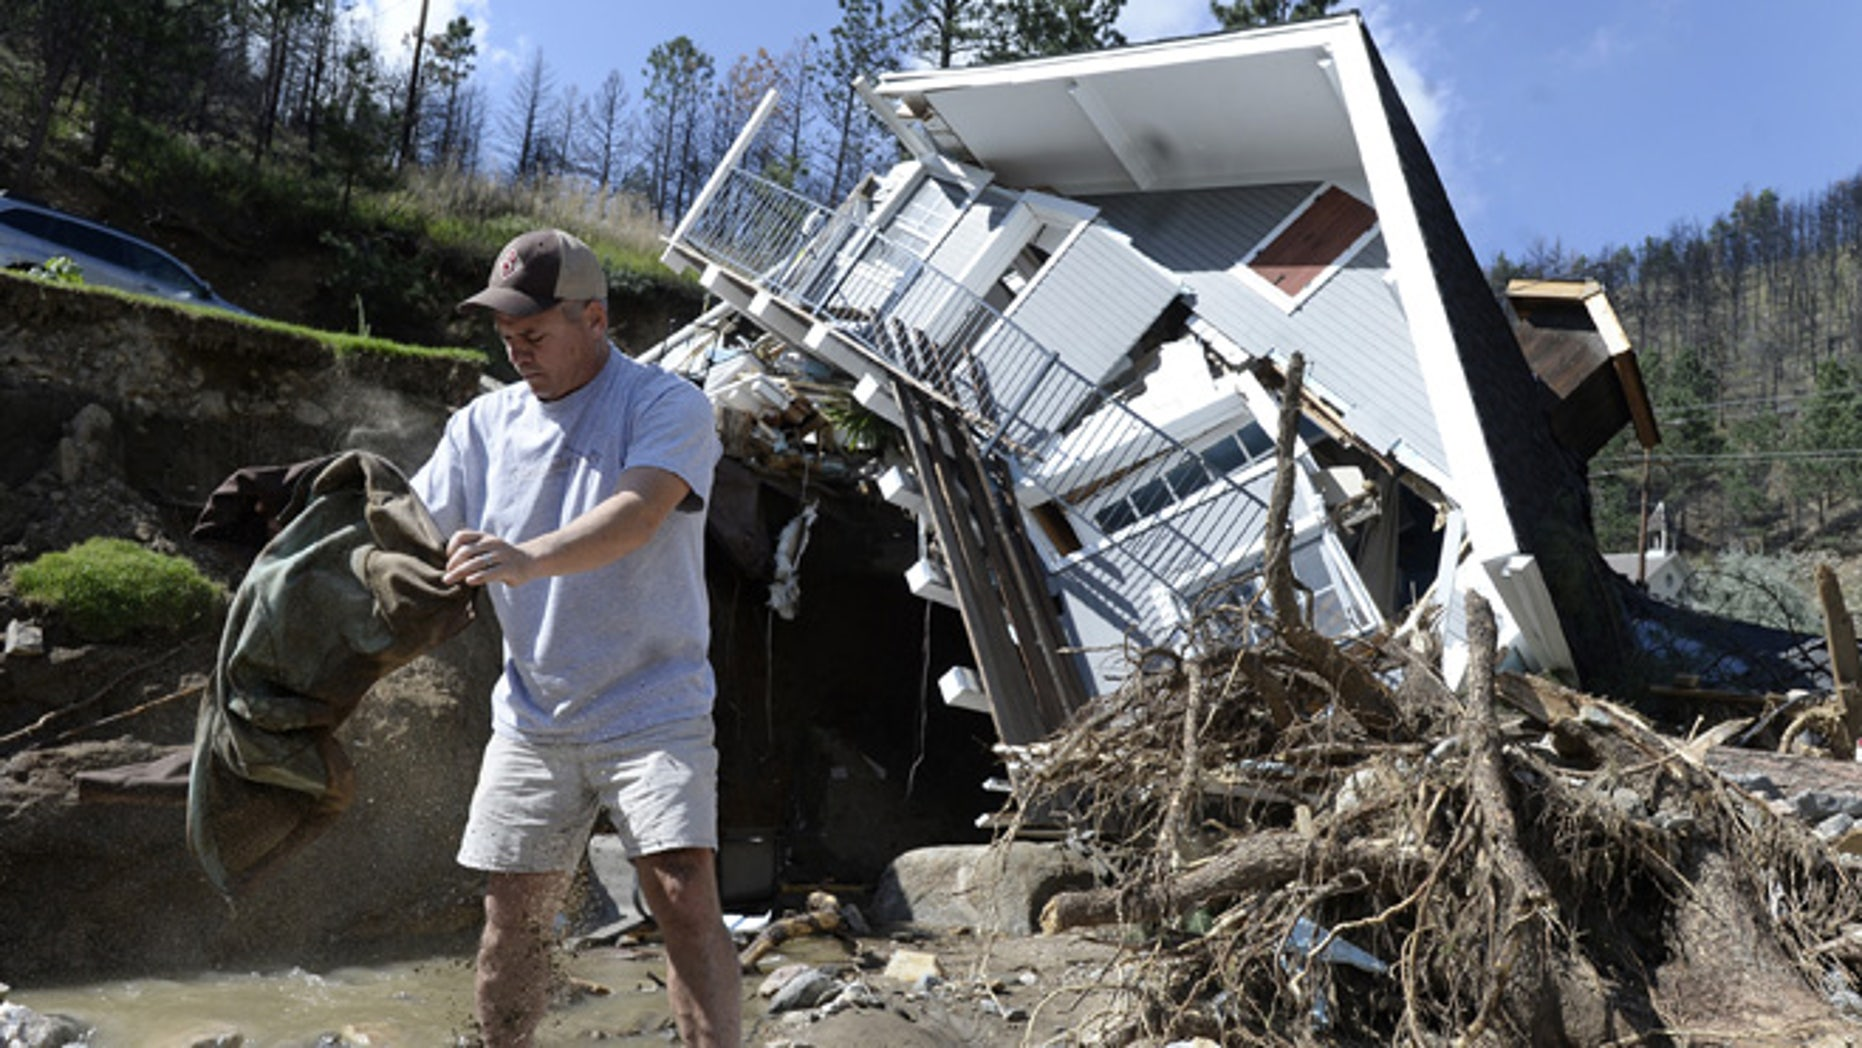 Sept. 19, 2013: In this photo, Sean McCroskey pulls his wife Meg's jacket out of the debris in the river in front of their destroyed home on Gold Run Road in Boulder County, Colo. State highway crews and National Guard troops worked Sunday, Sept. 22, to repair highways to Colorado mountain towns cut off by the unprecedented flooding.